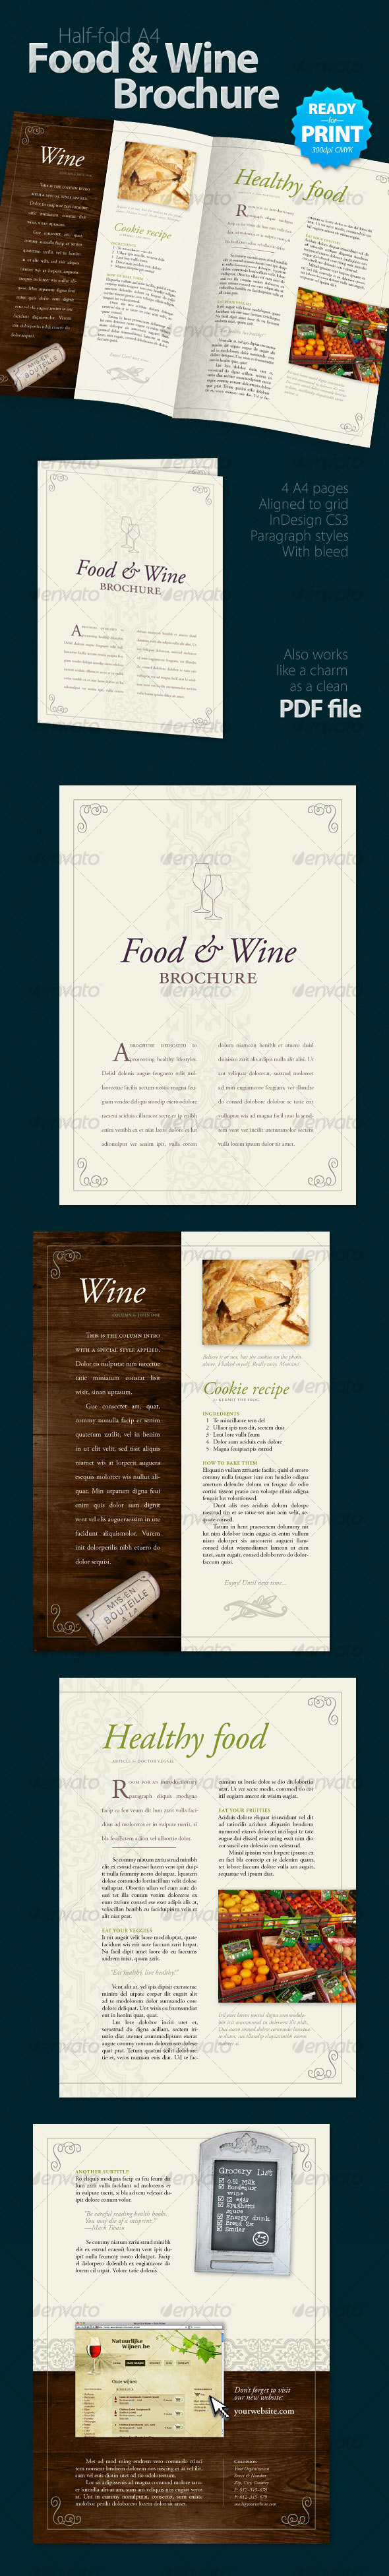 Food & Wine Brochure (4 Pages)